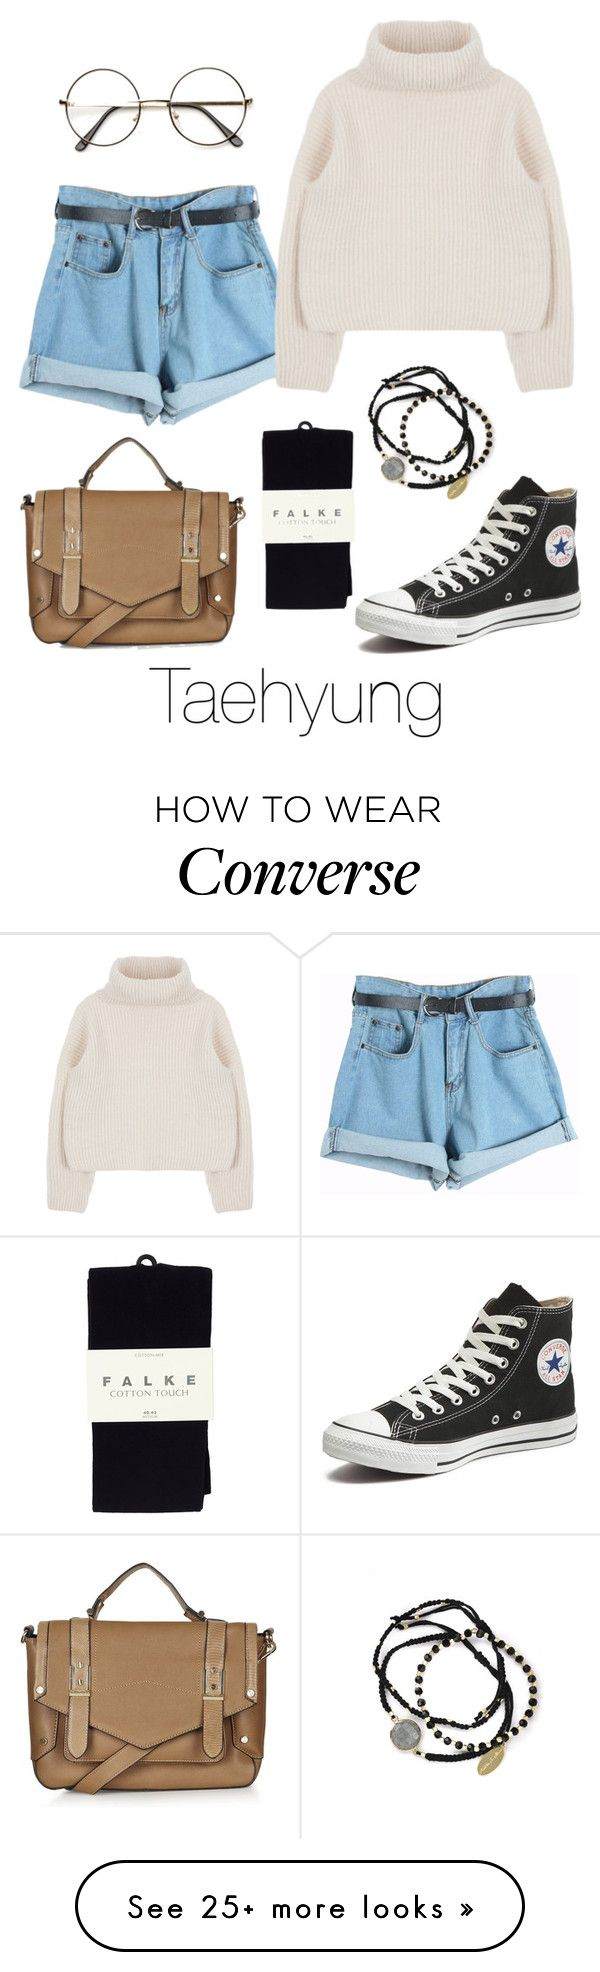 """Taehyung Inspired w/ Converse"" by btsoutfits on Polyvore featuring Chicnova Fashion, Converse, Falke, Feather & Stone and Topshop"